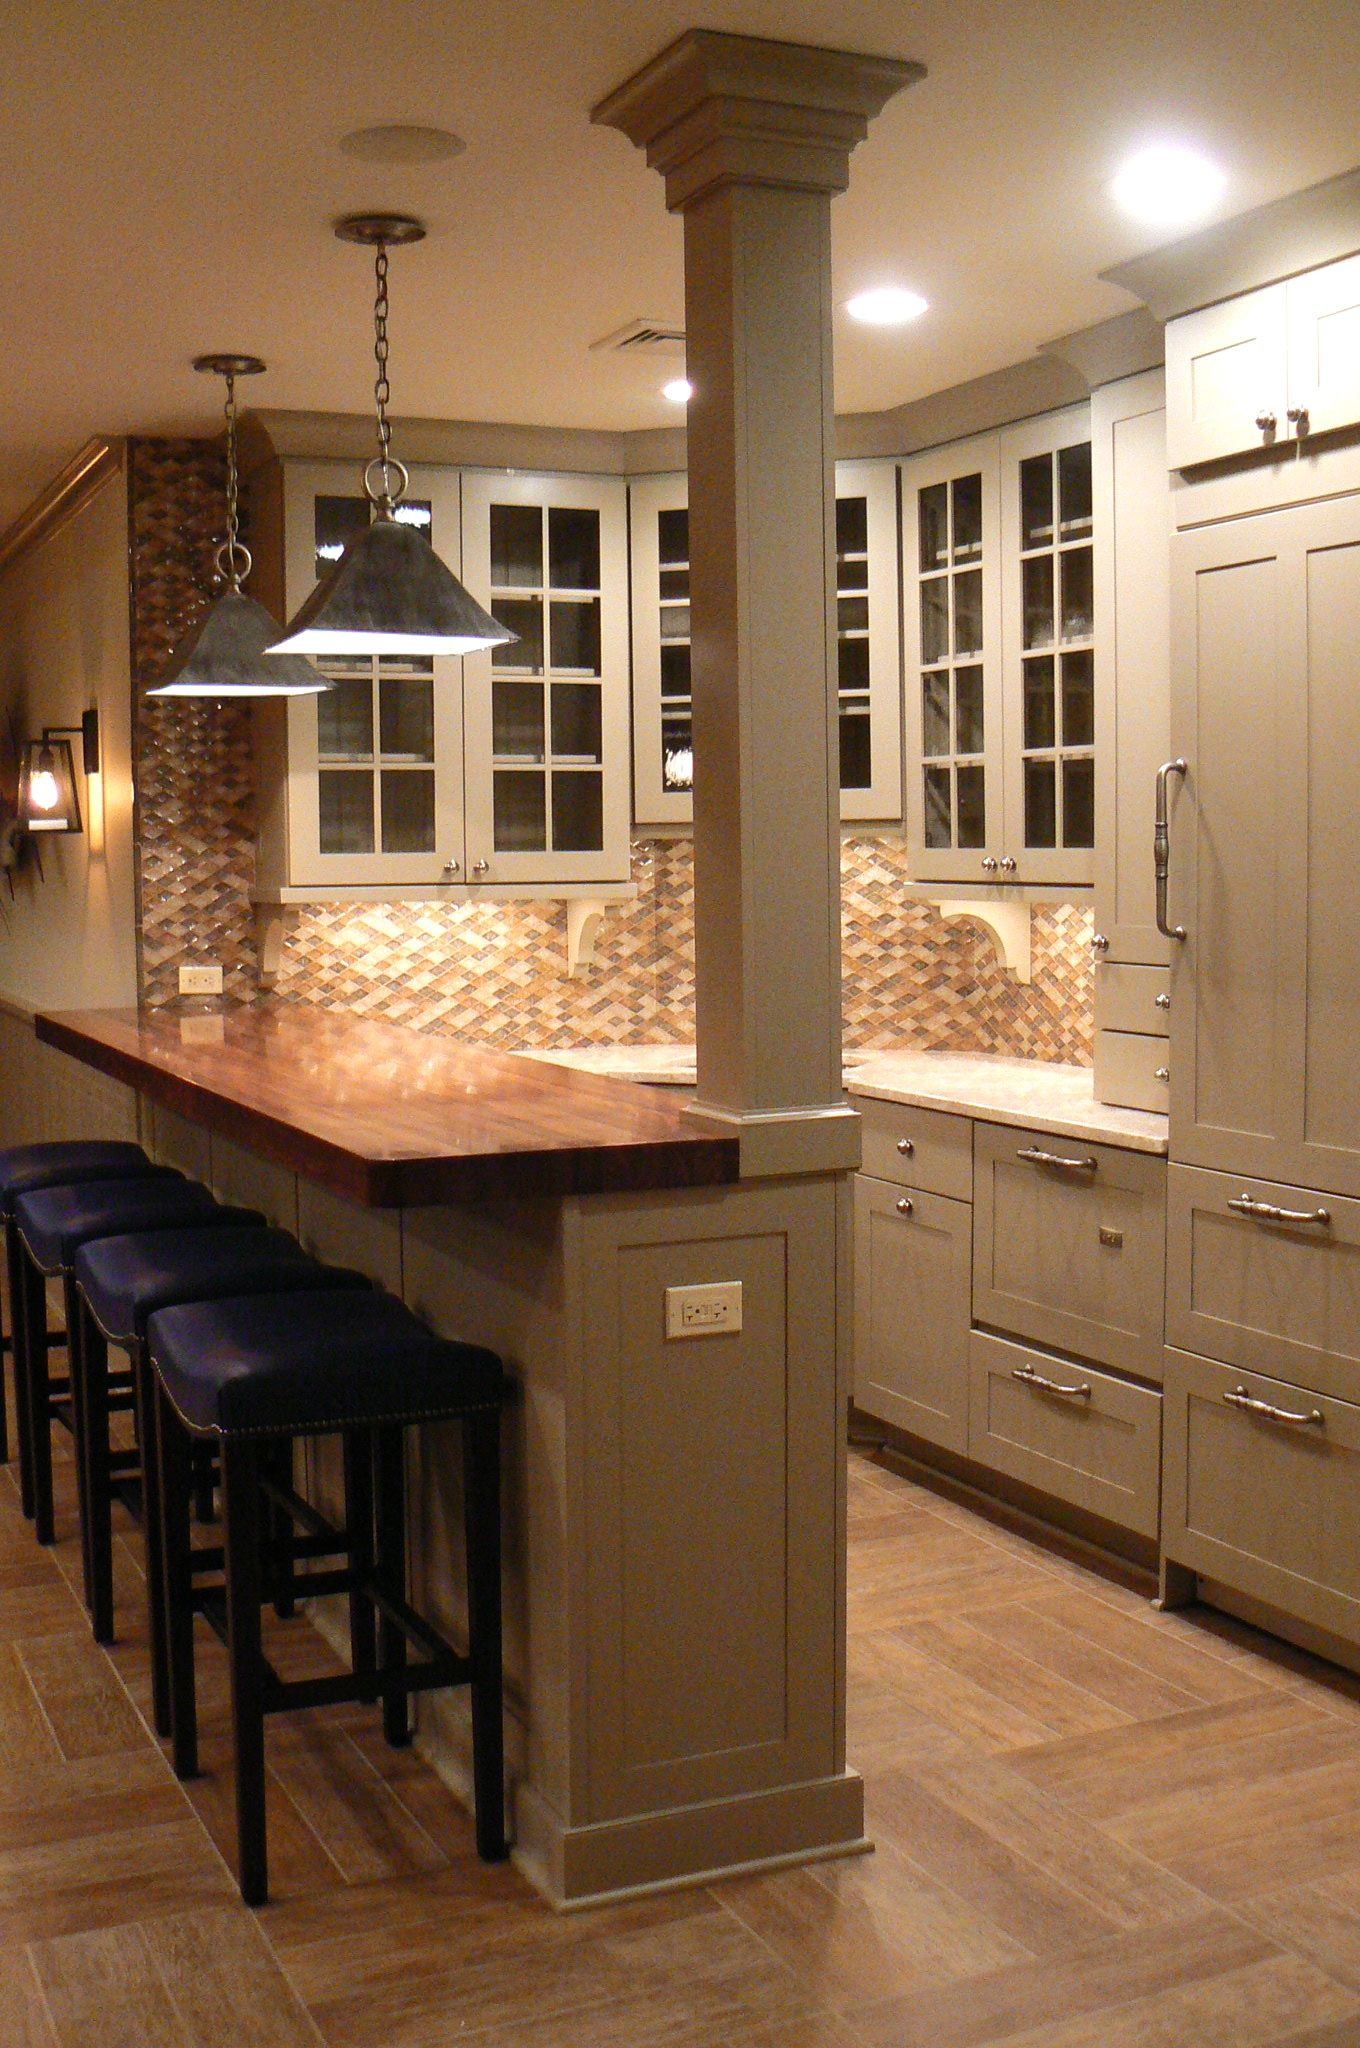 Gentil Like The Wood Bar Top And Colour Of Cabinets And Also Floor   Is That  Hardwood Or Tile? More